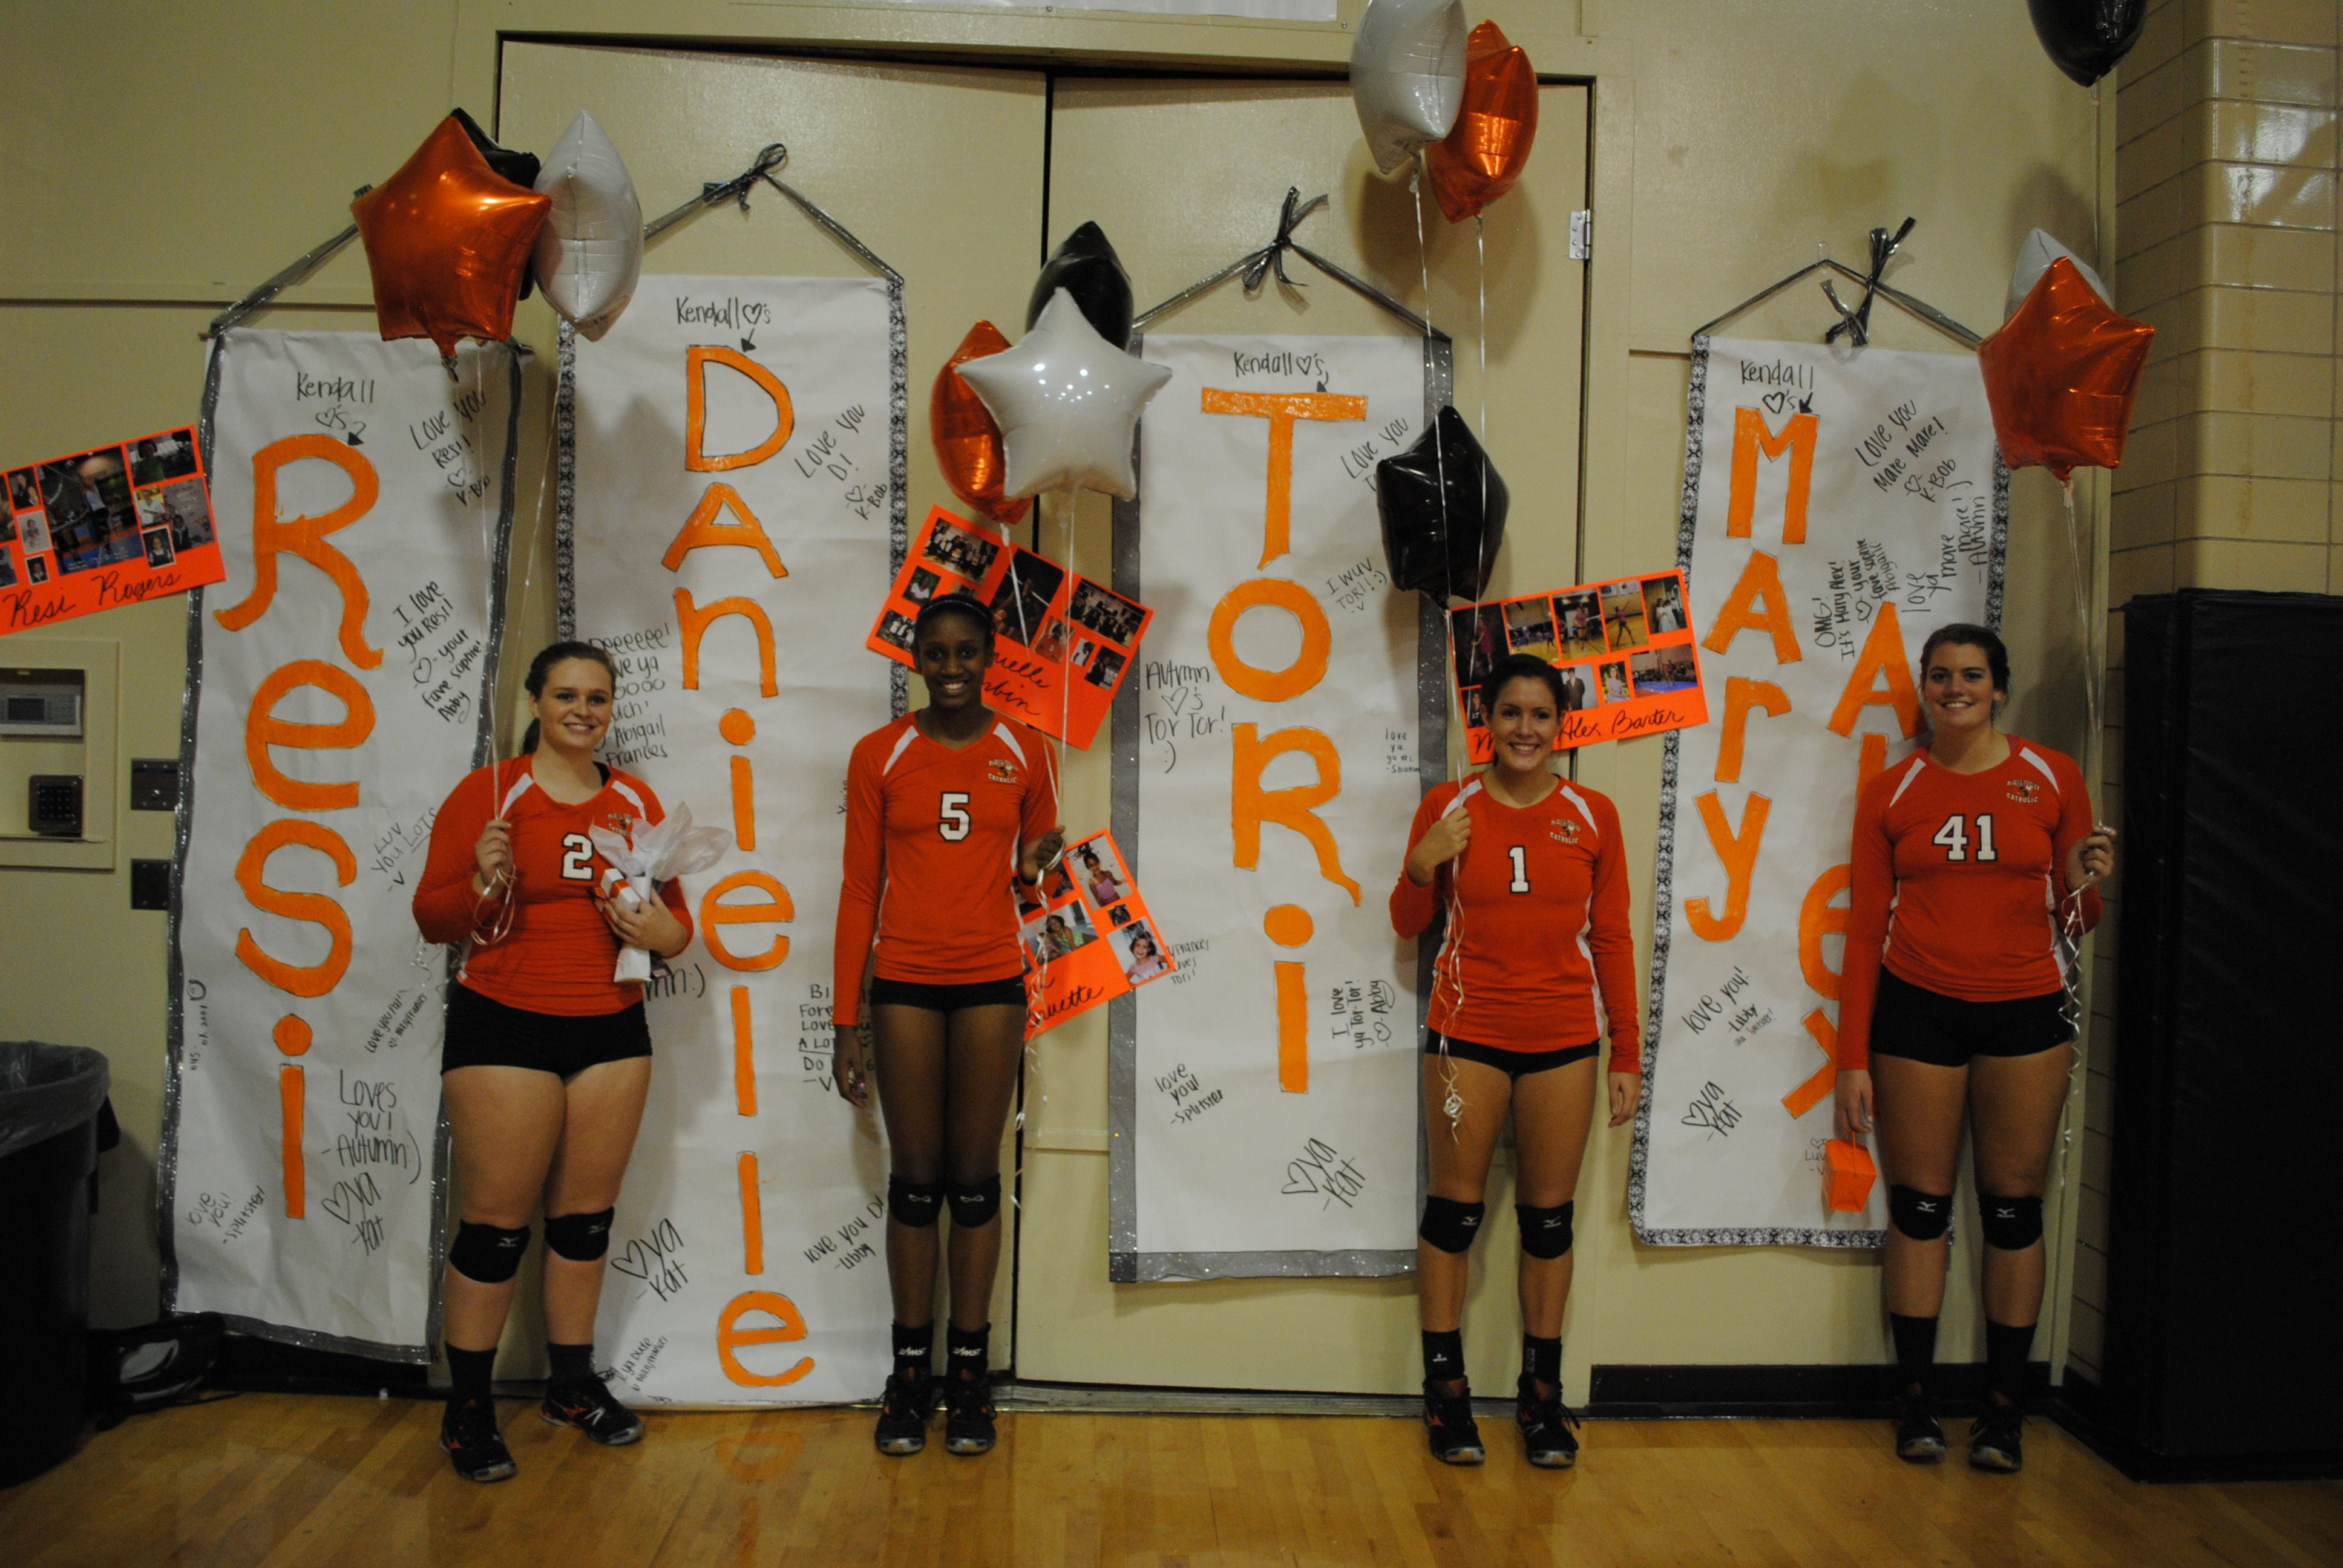 High school senior night ideas banners signed by